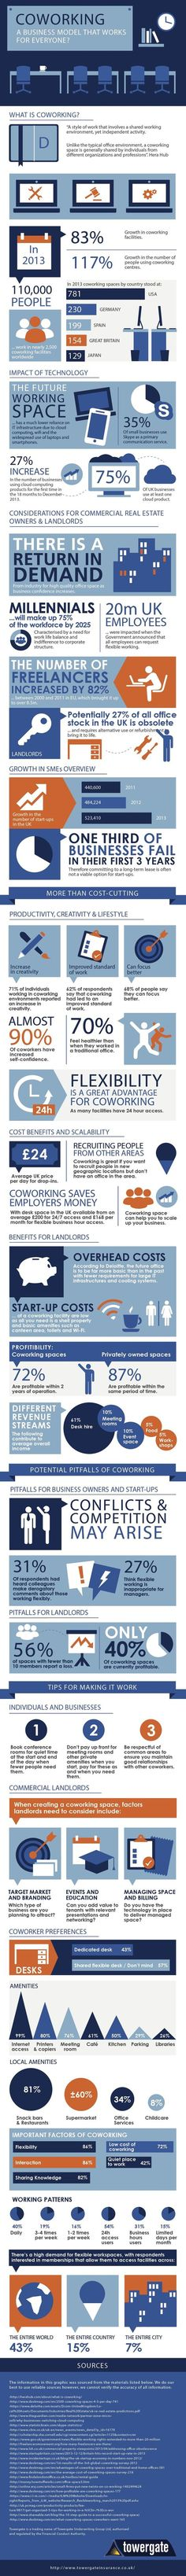 IS COWORKING A BUSINESS MODEL THAT WORKS FOR EVERYONE? (INFOGRAPHIC)